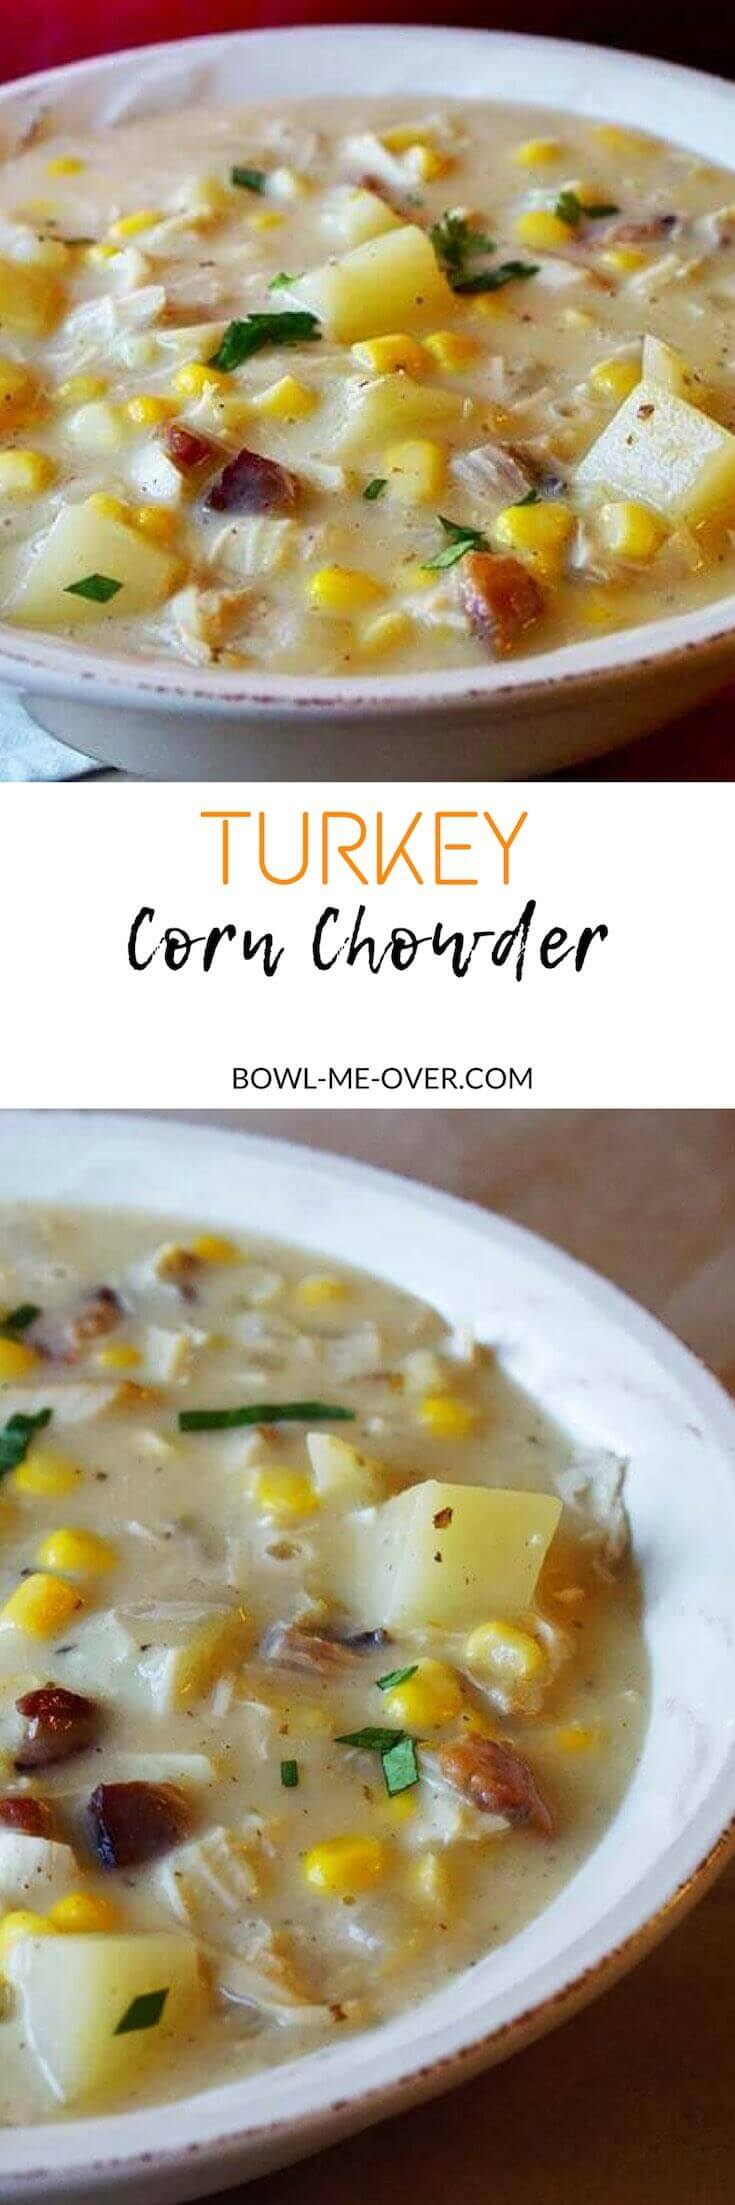 Turkey Corn Chowder is an easy soup that you make from leftovers. Grab a few things items from your pantry, fridge and freezer. Dinner is done! #chowder #leftovers #turkeycornchowder #BowlMeOver